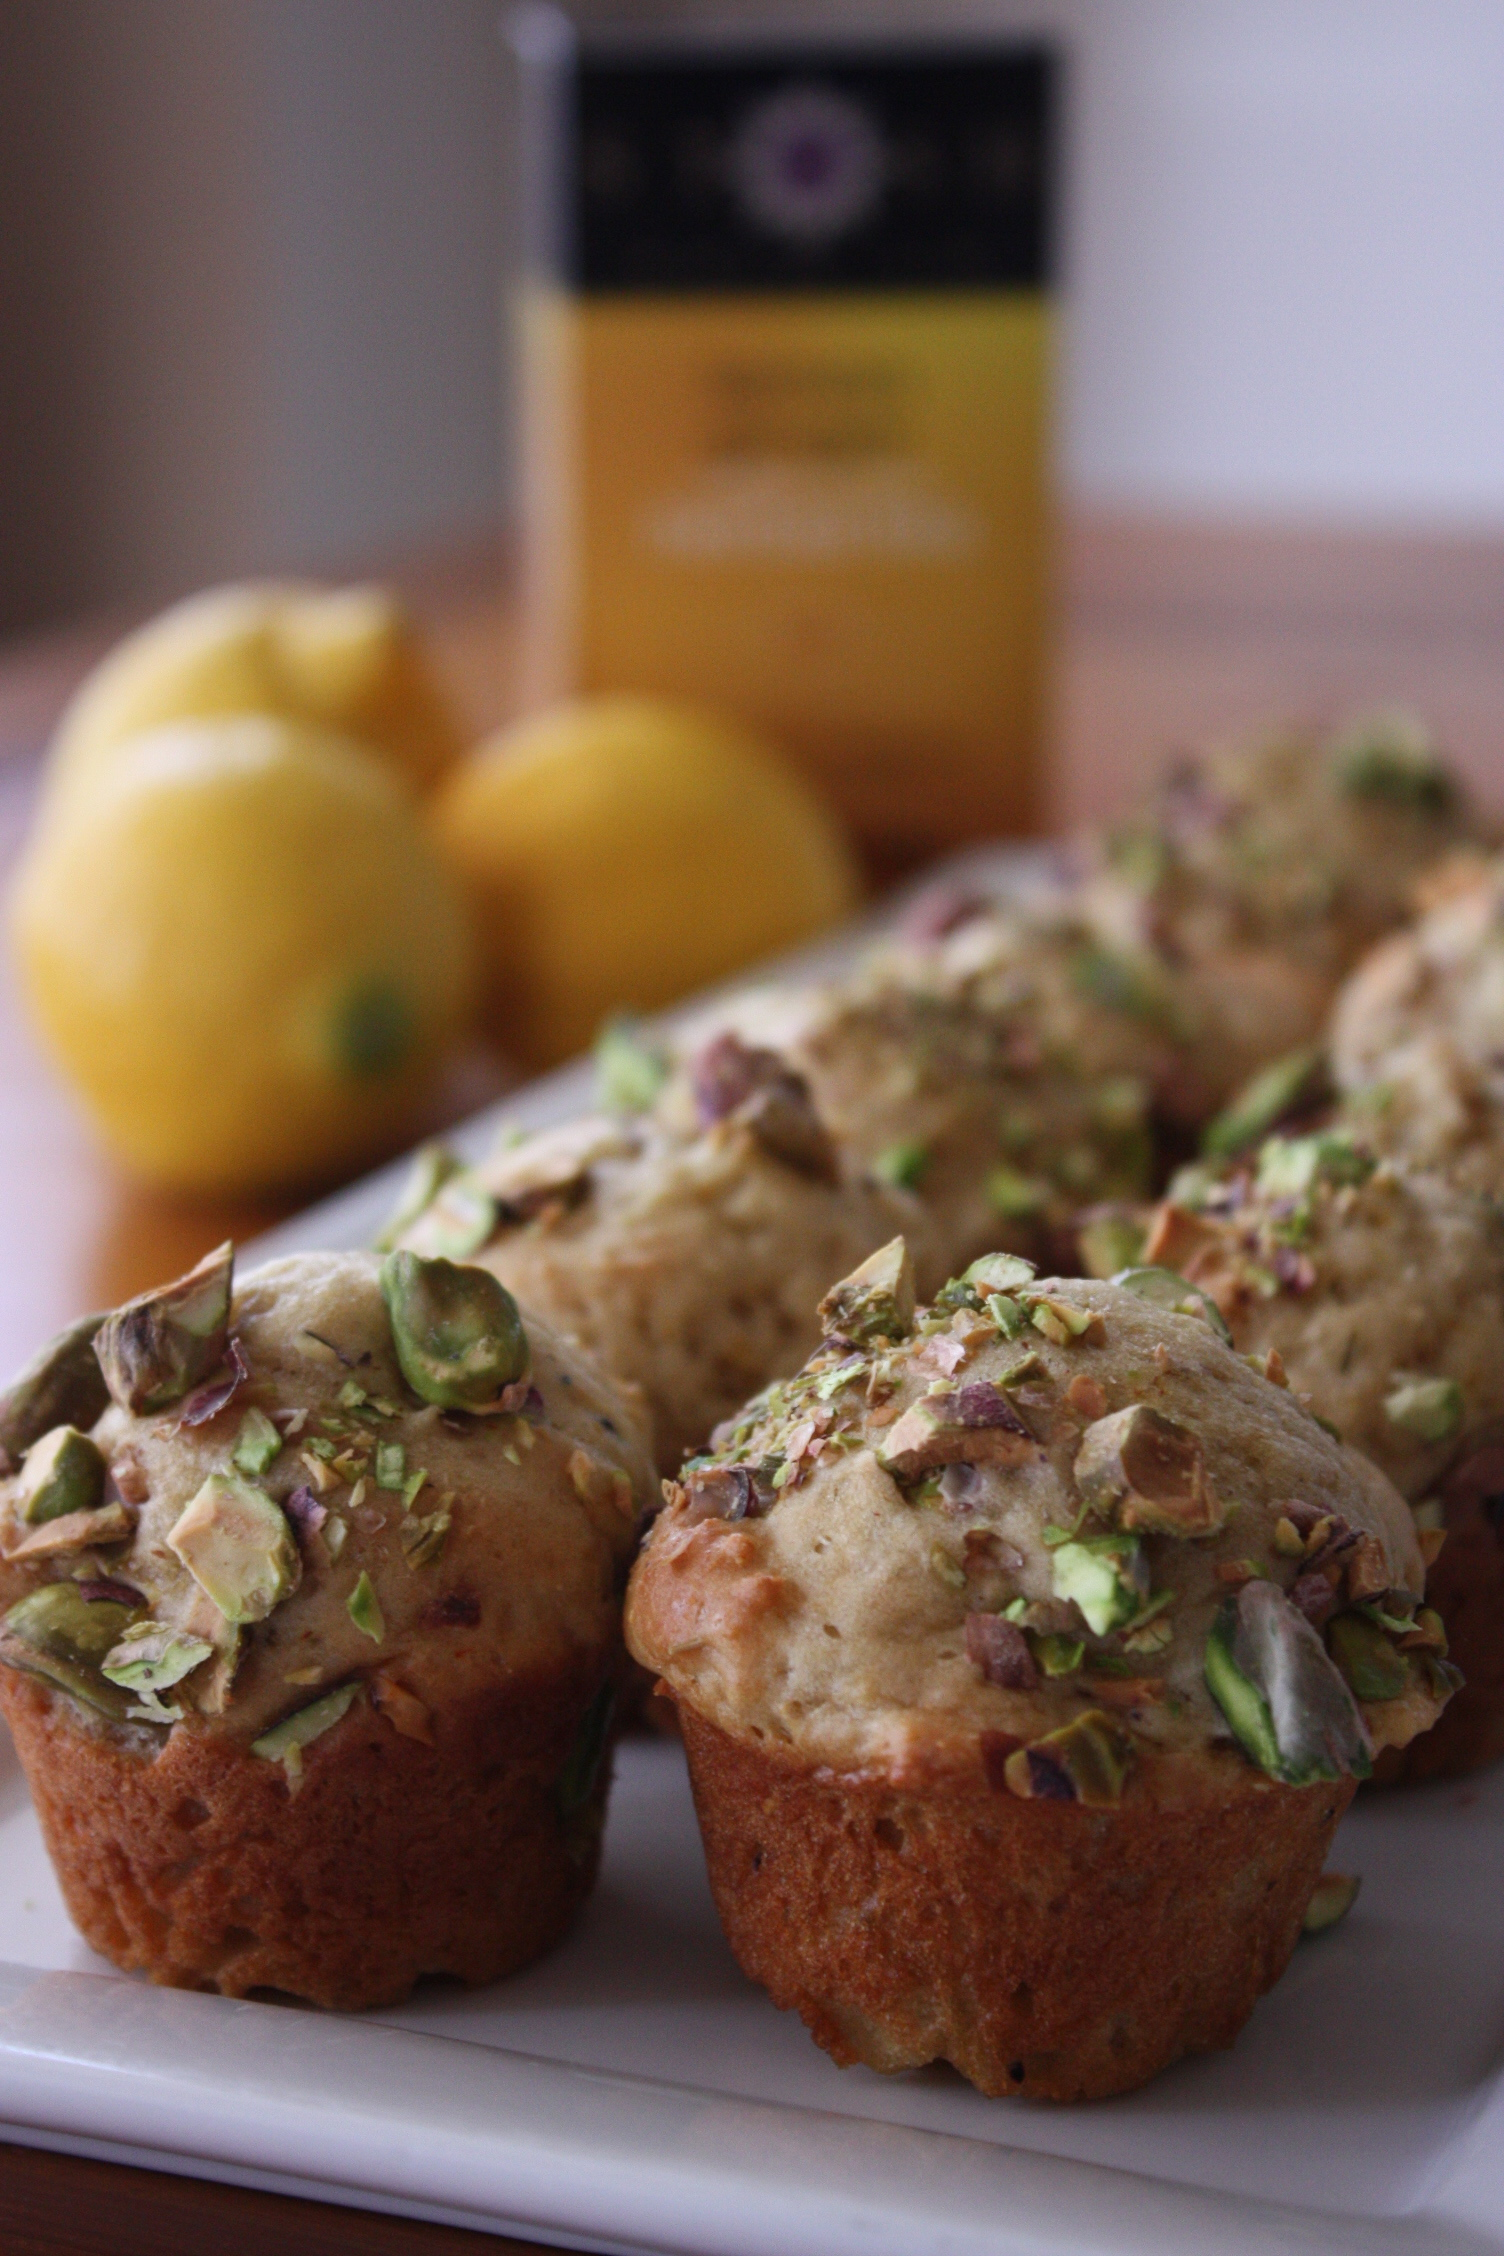 Lemon Ginger Tea Muffins (with Chobani yogurt). - Knead to Cook